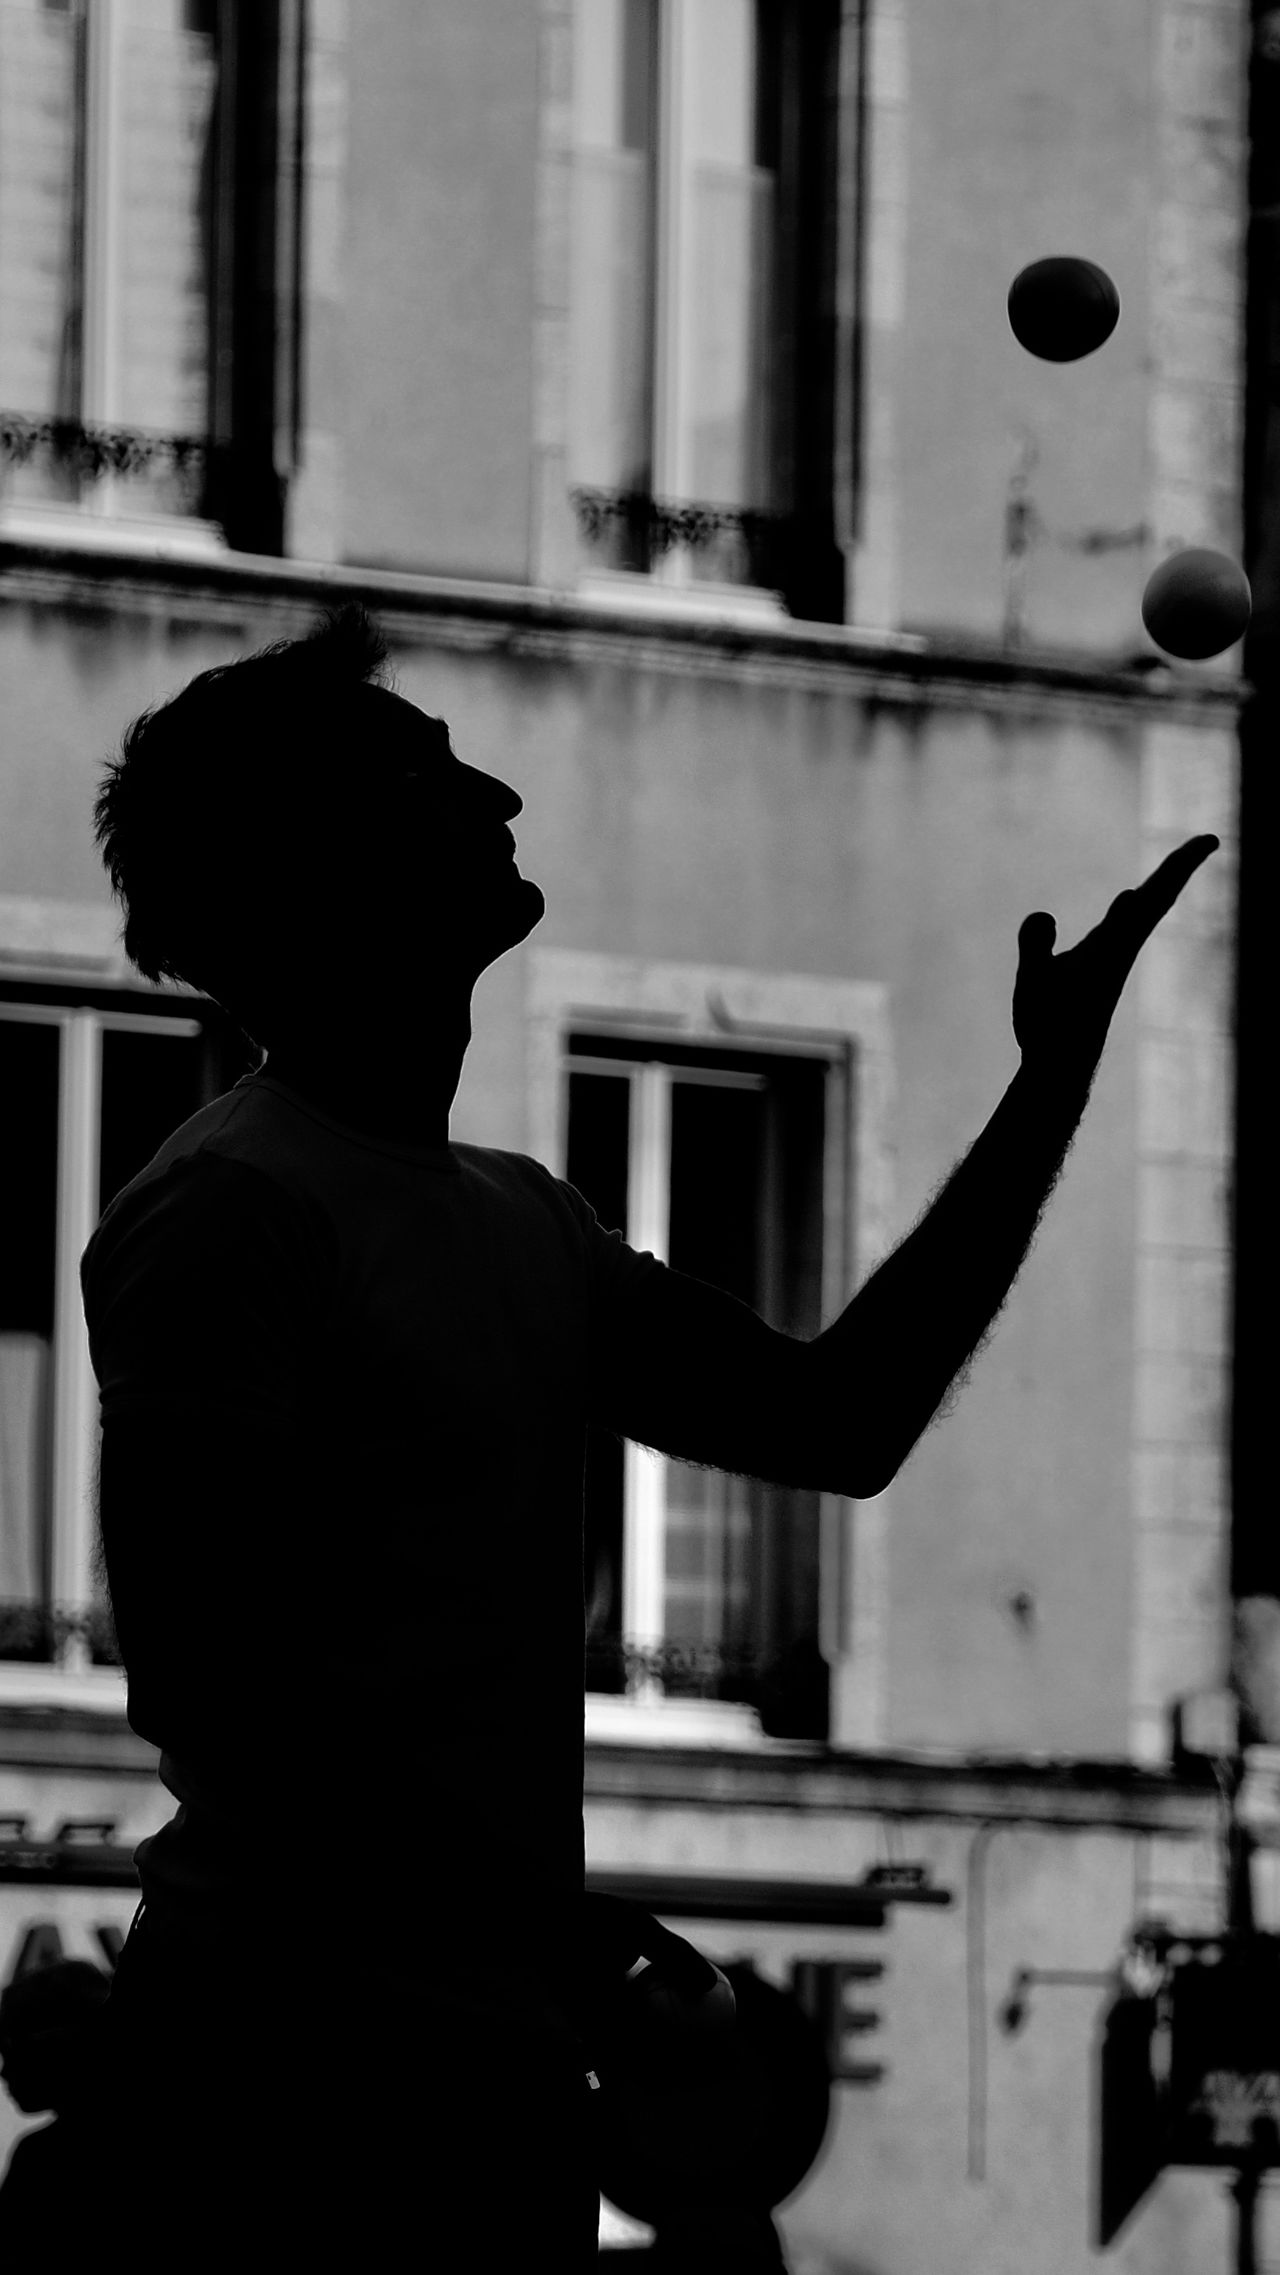 Black And White Photography Blackandwhite Circus Close-up Contrast Focus On Foreground Juggler Juggling Men One Person Real People Silhouette Standing